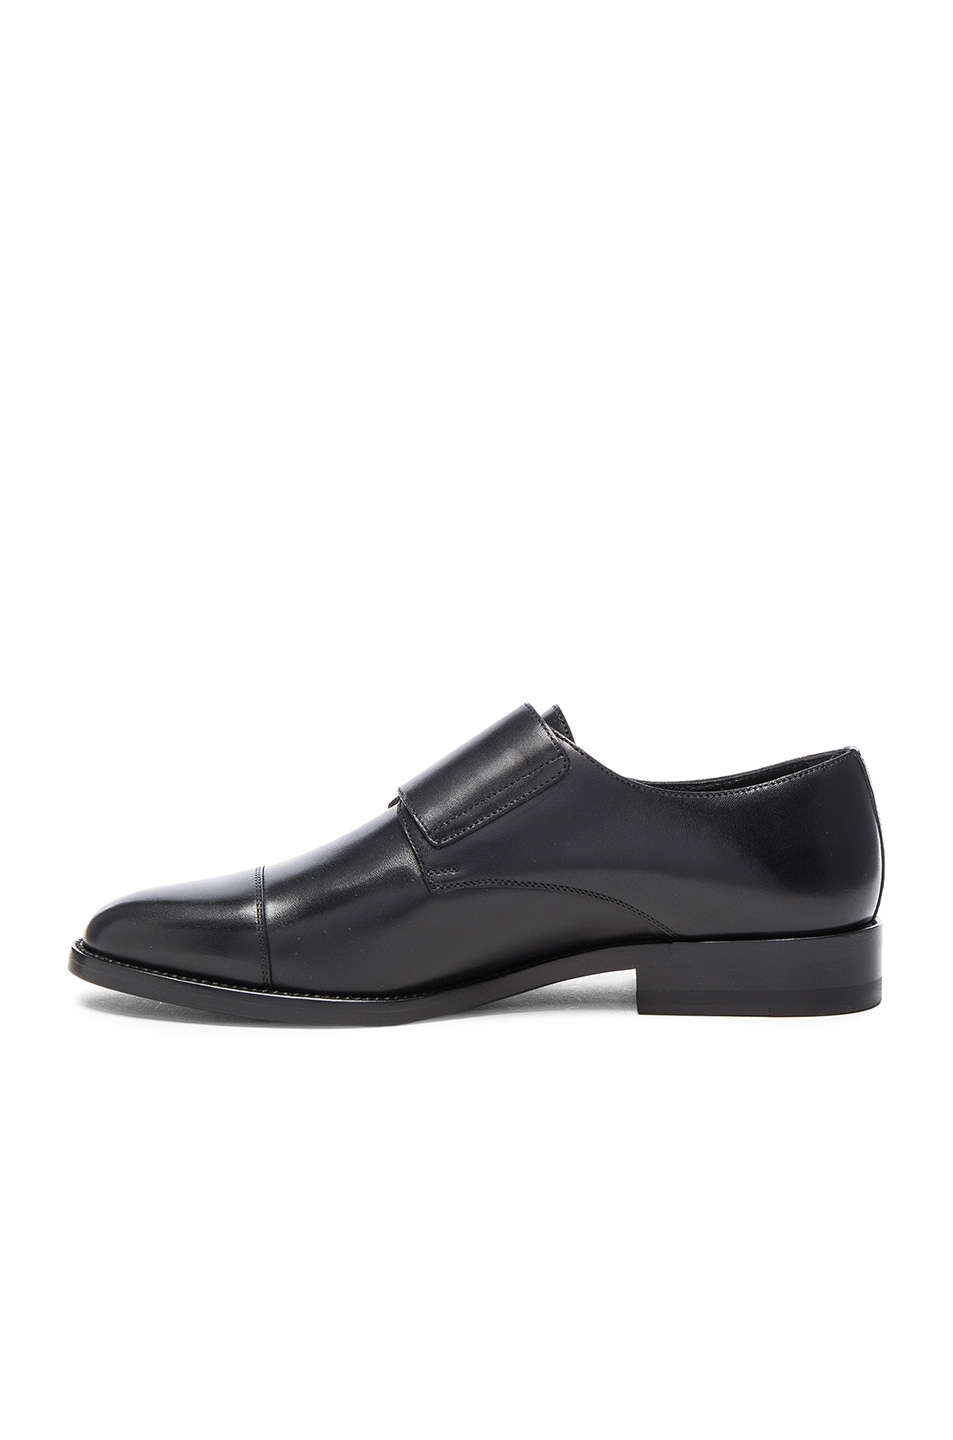 Image 5 of Saint Laurent Dylan Monk Shoes in Black